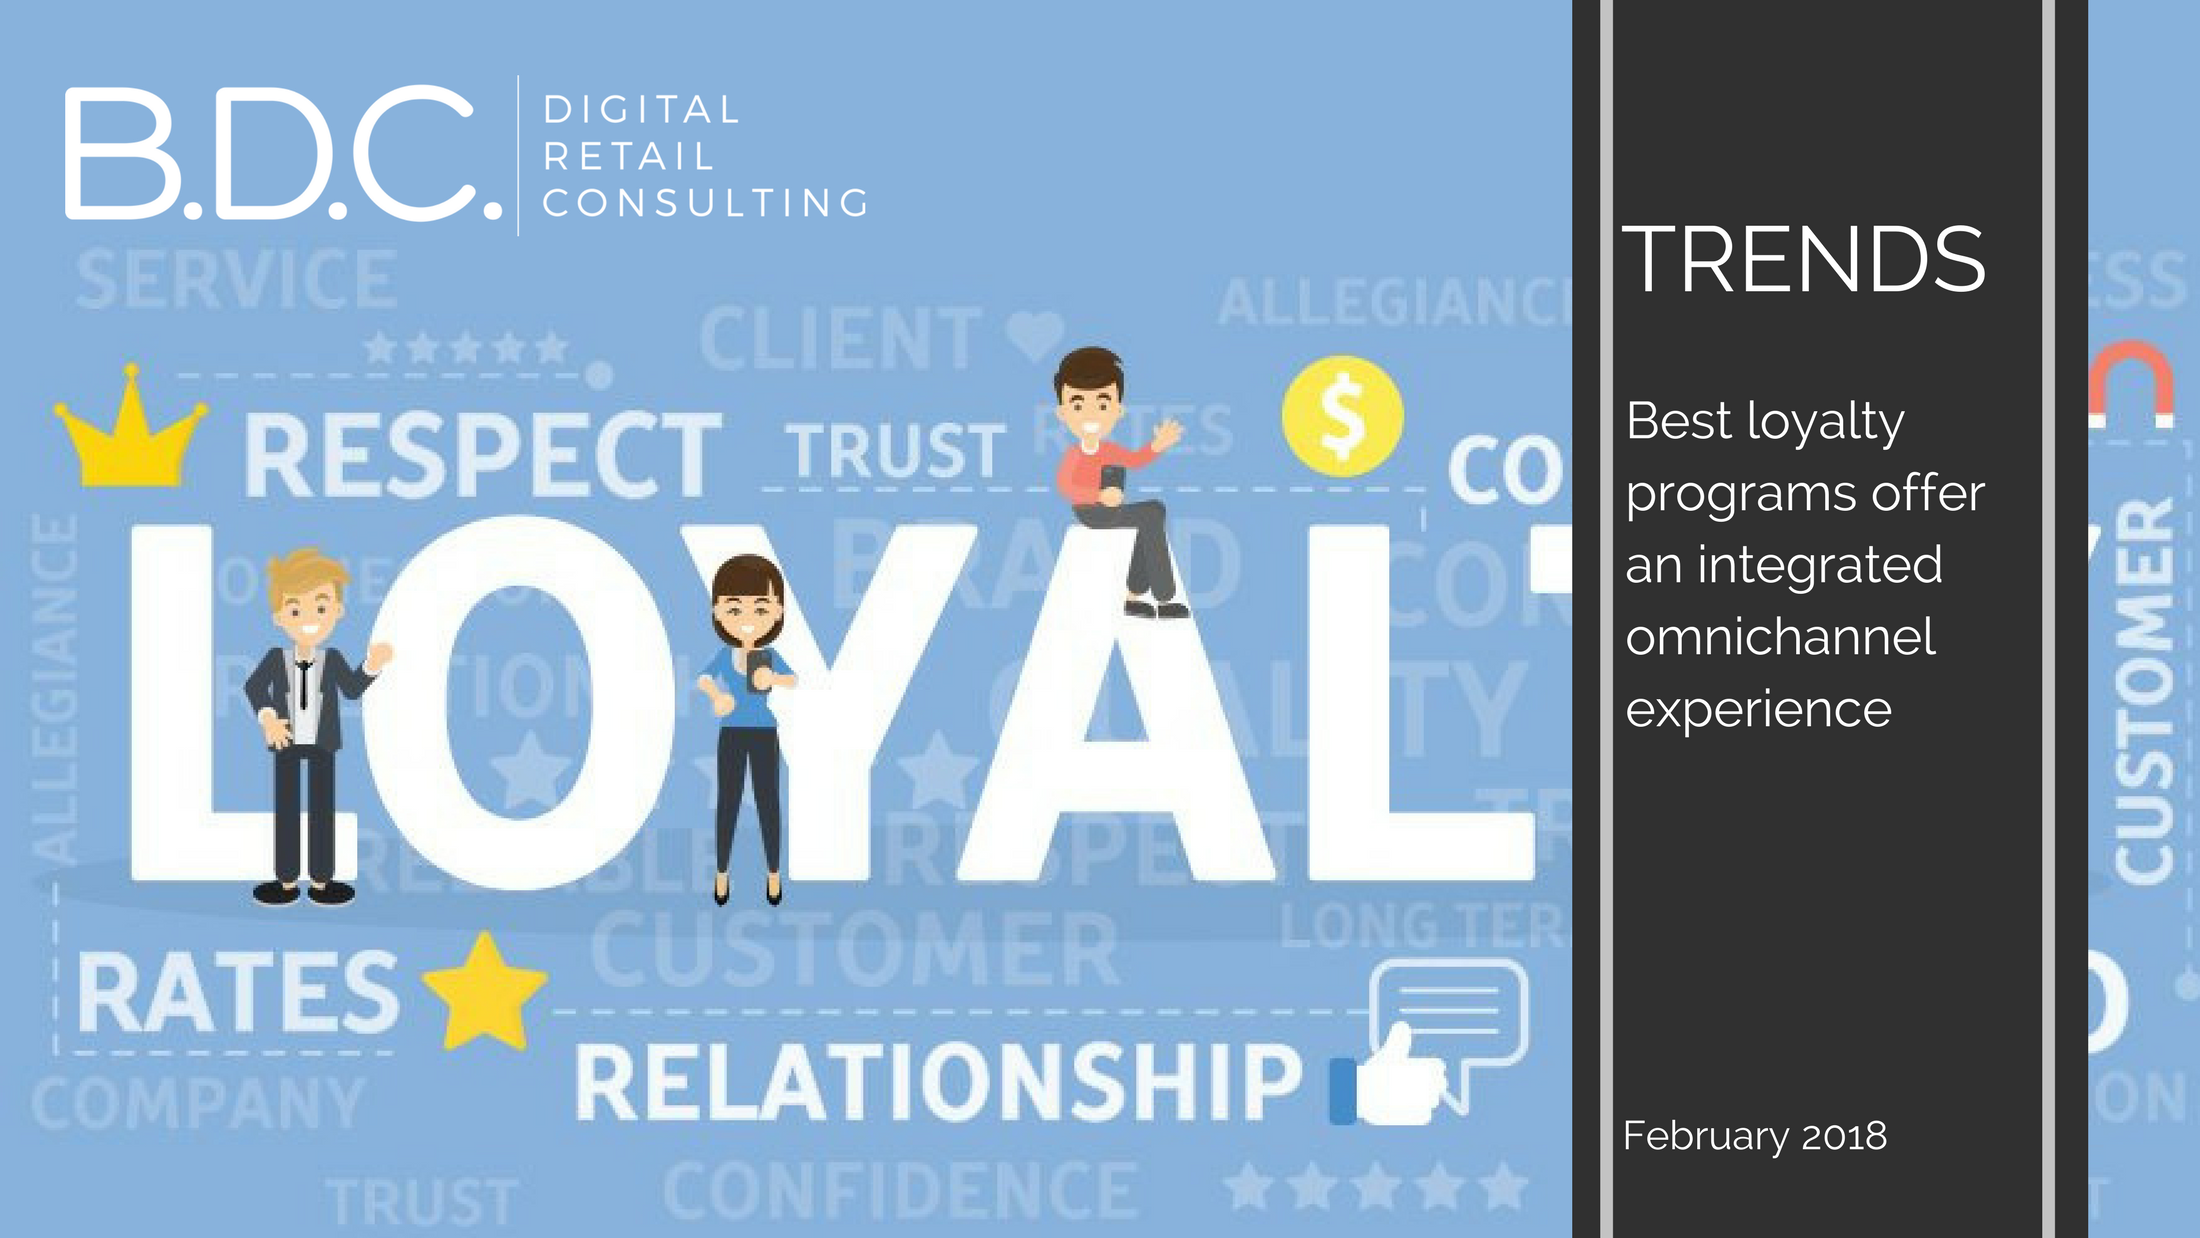 Trends News 31 - Best loyalty programs offer an integrated omnichannel experience